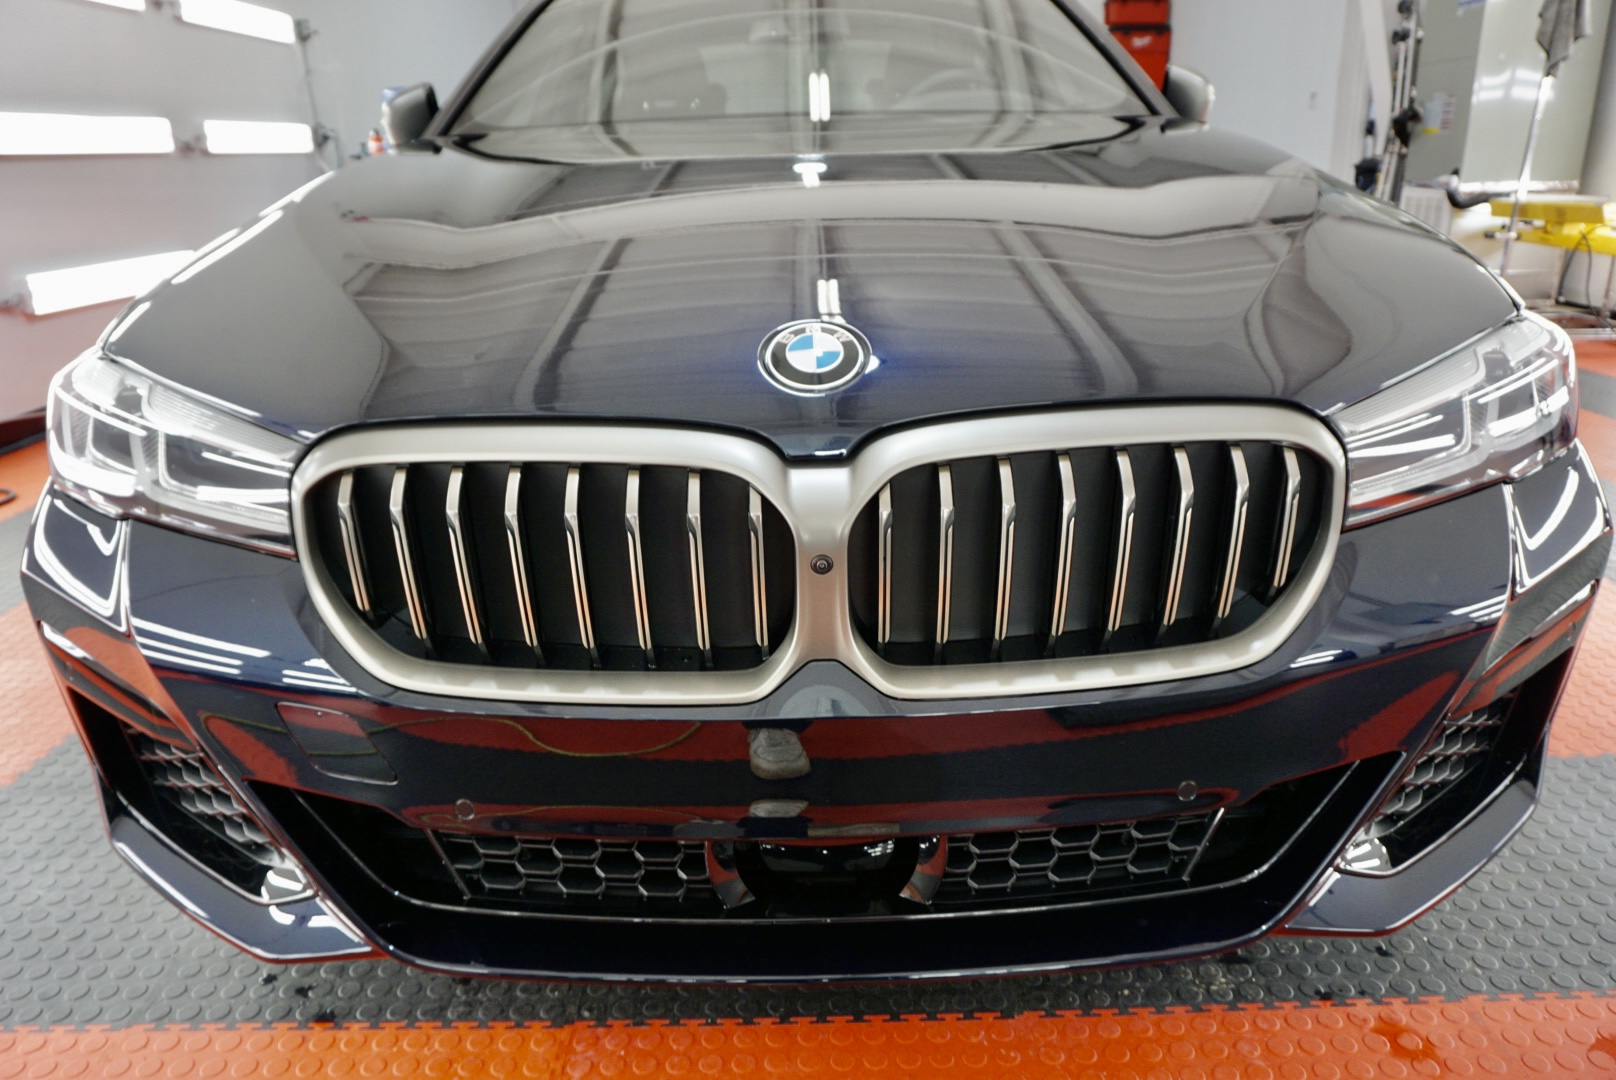 New Car Preparation of a 2021 BMW 5-Series M5